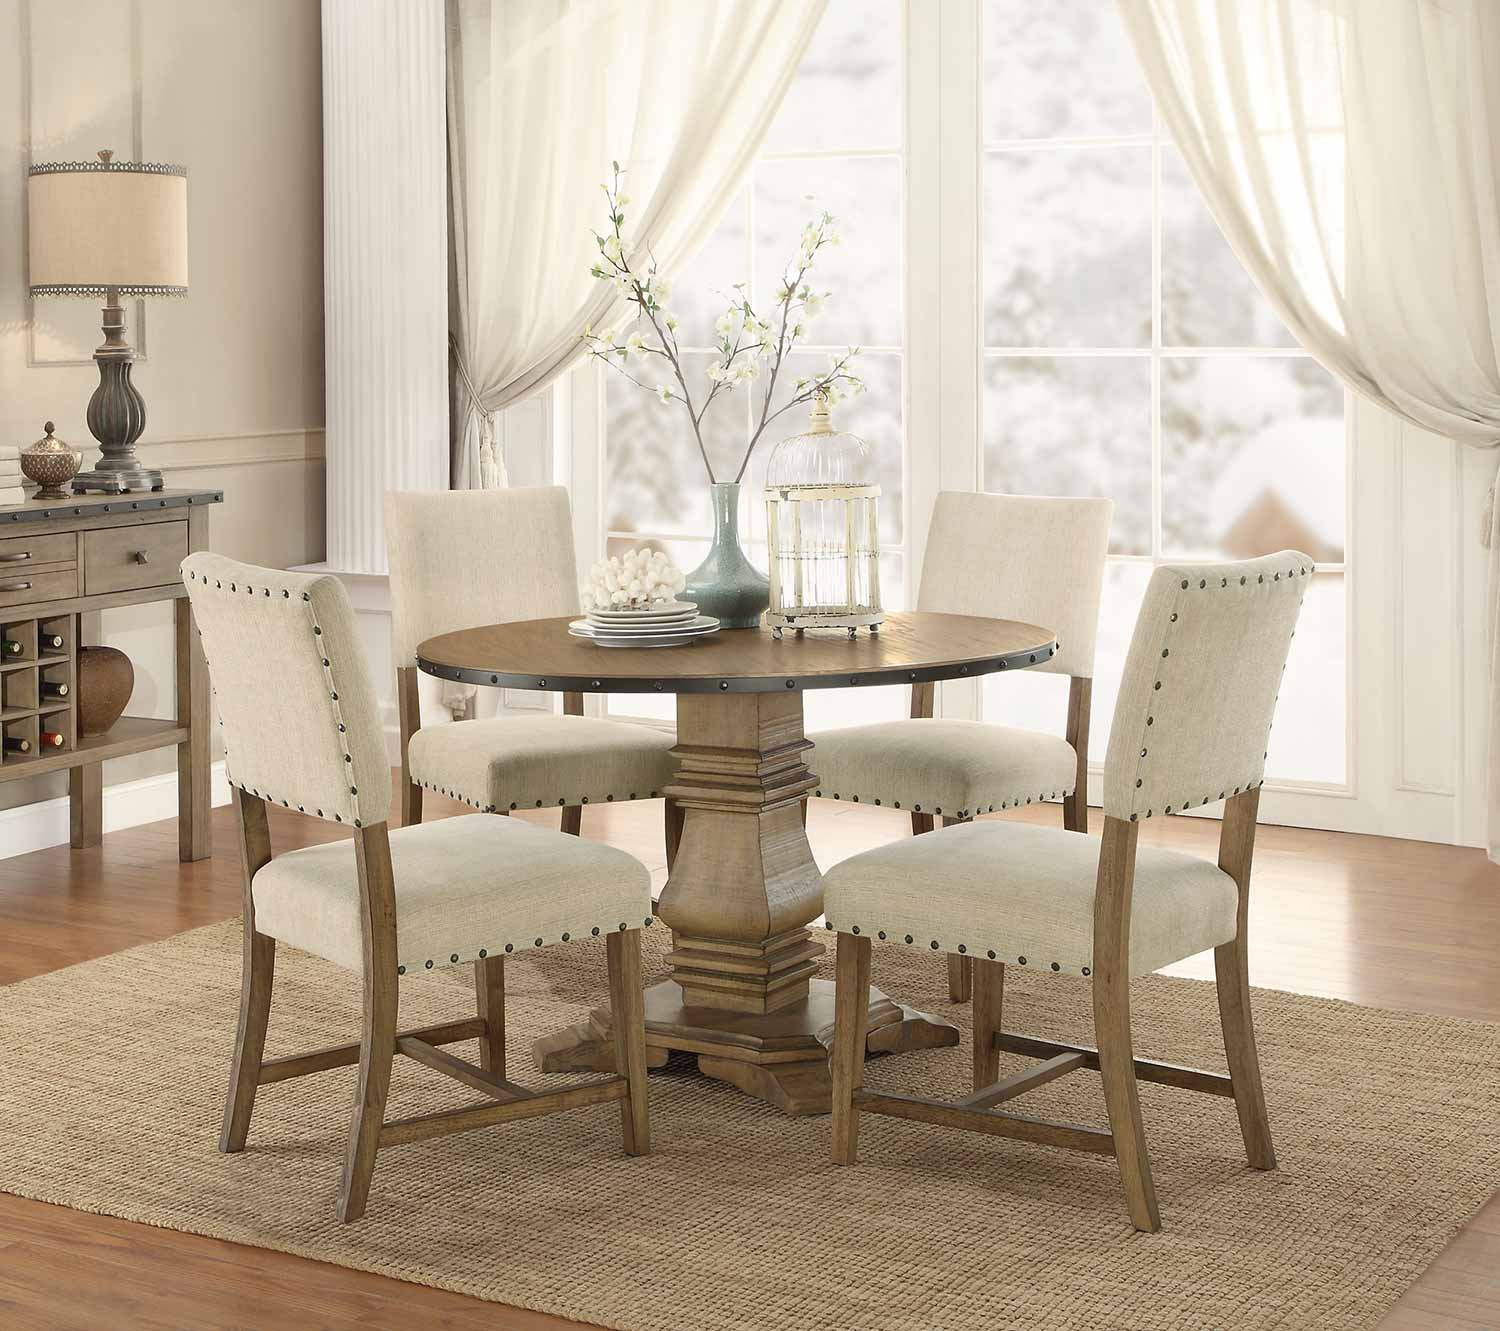 Homelegance Veltry Round Dining Set - Weathered Finish